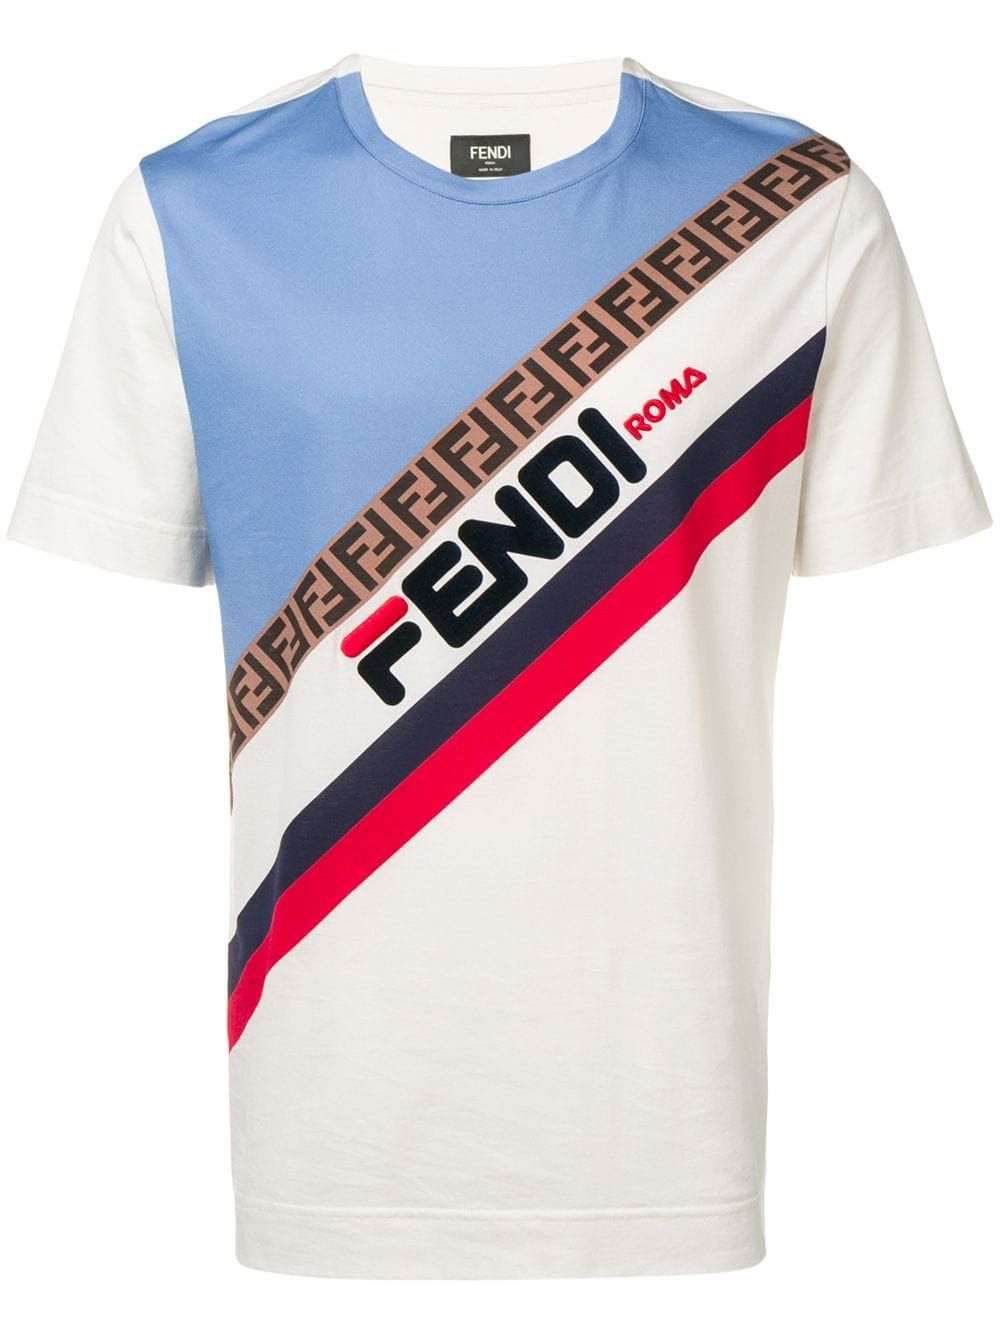 999b126d3353d FENDI FENDI LOGO PRINT T-SHIRT - NEUTRALS.  fendi  cloth